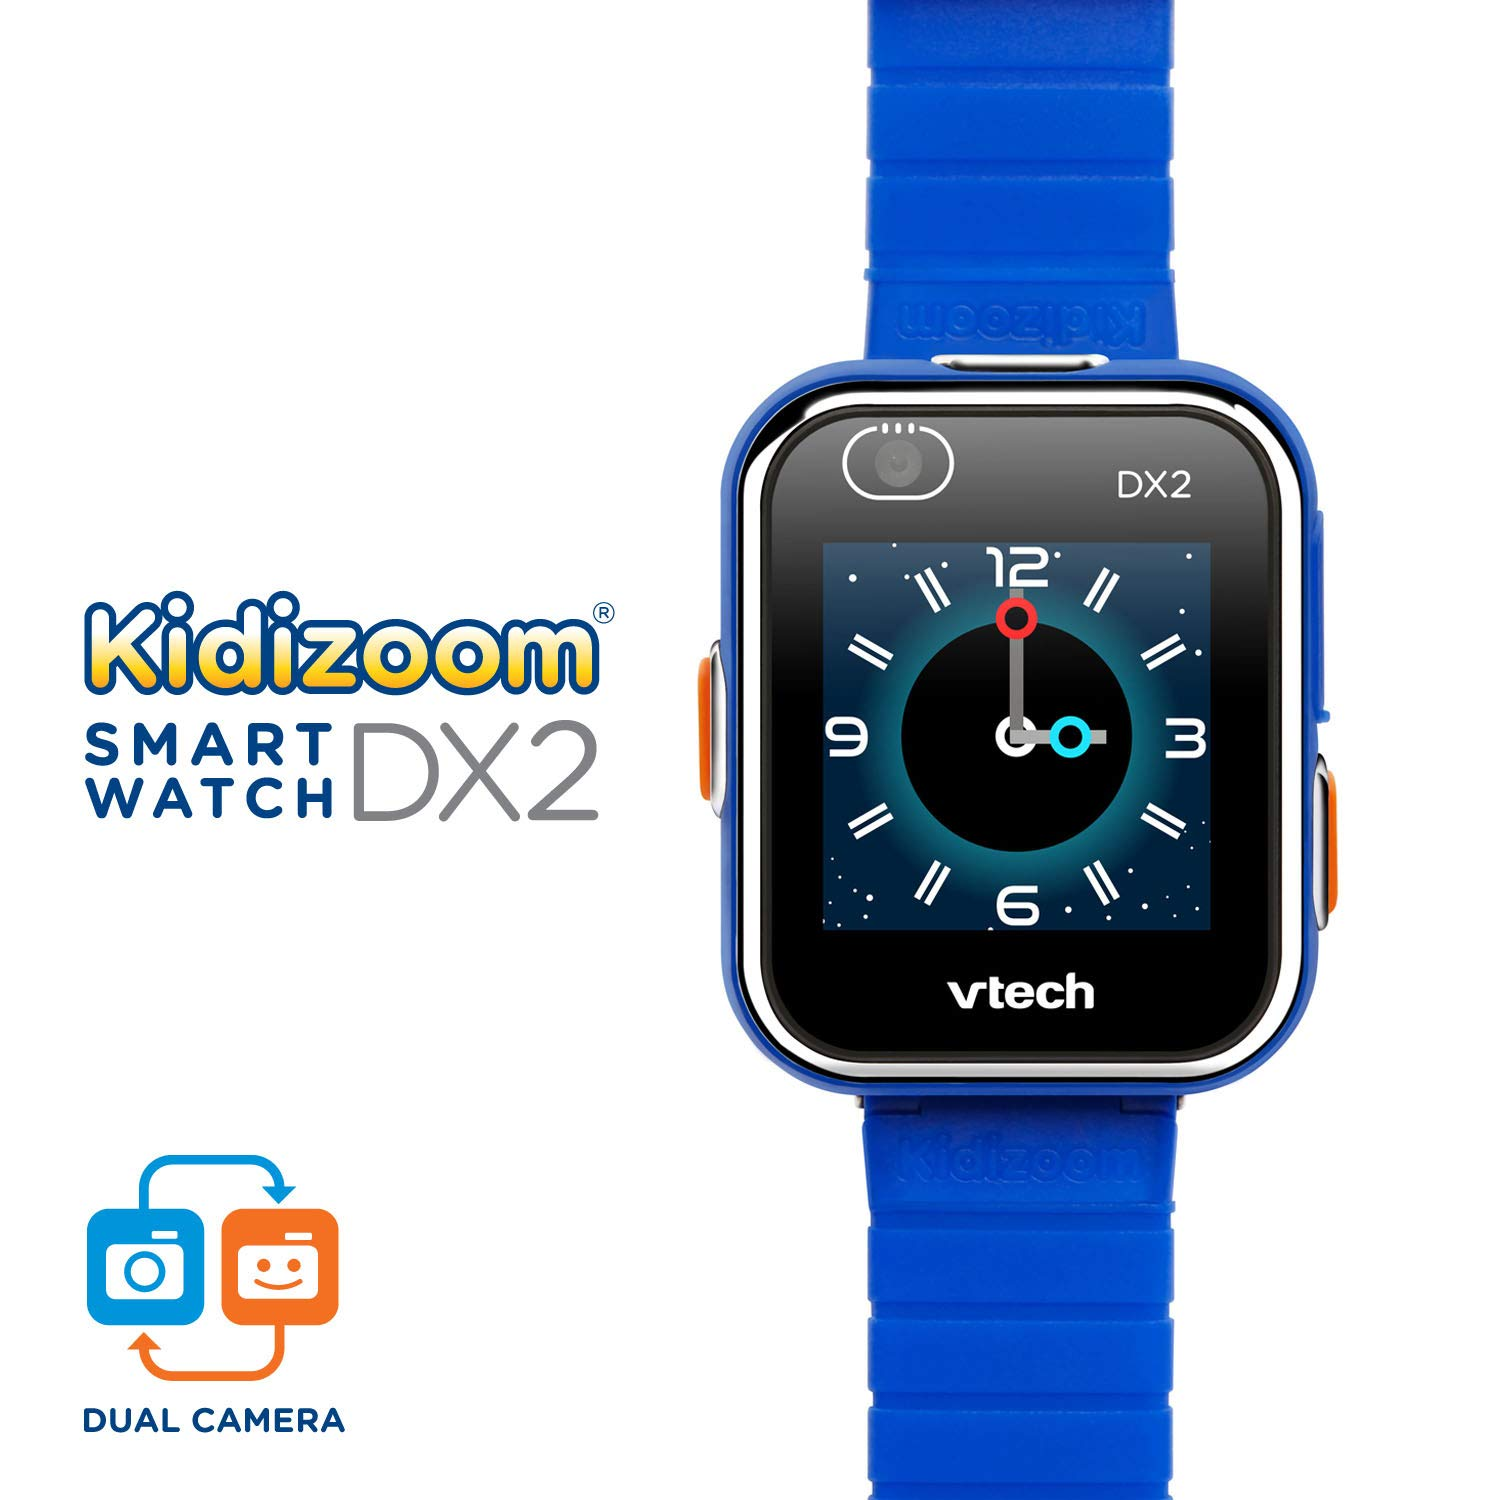 VTech 3480-193822 Kidizoom Smart Watch DX2 - Reloj inteligente ...